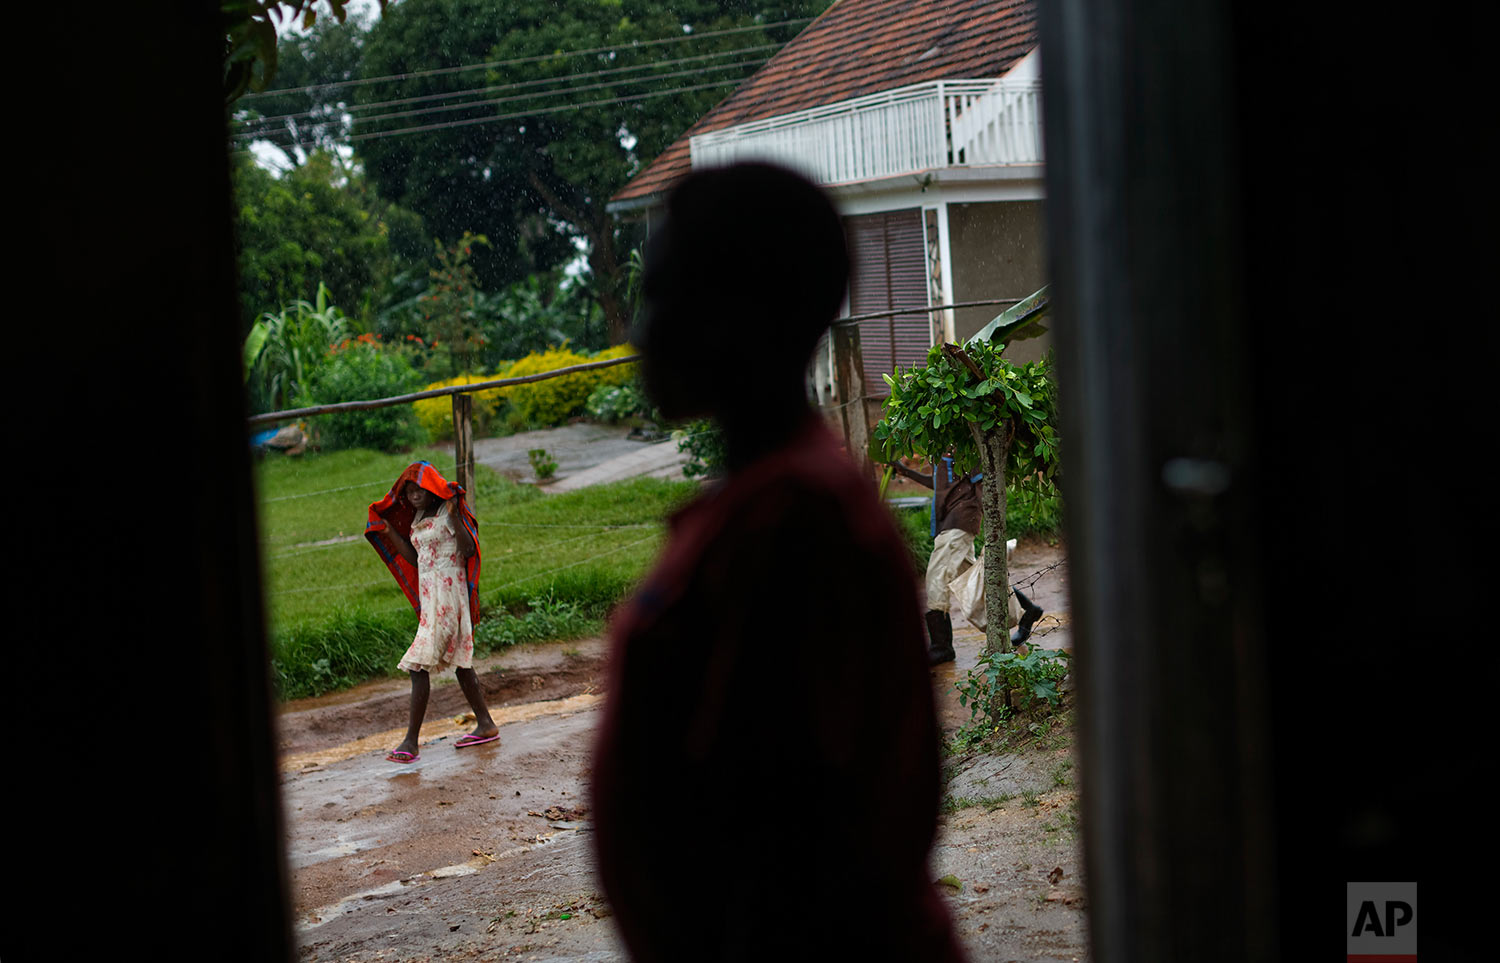 In this Tuesday, May 30, 2017 photo, a pregnant 15-year-old girl who was the victim of statutory rape, stands in a doorway of the house where she stays in Masaka, Uganda.(AP Photo/Ben Curtis)